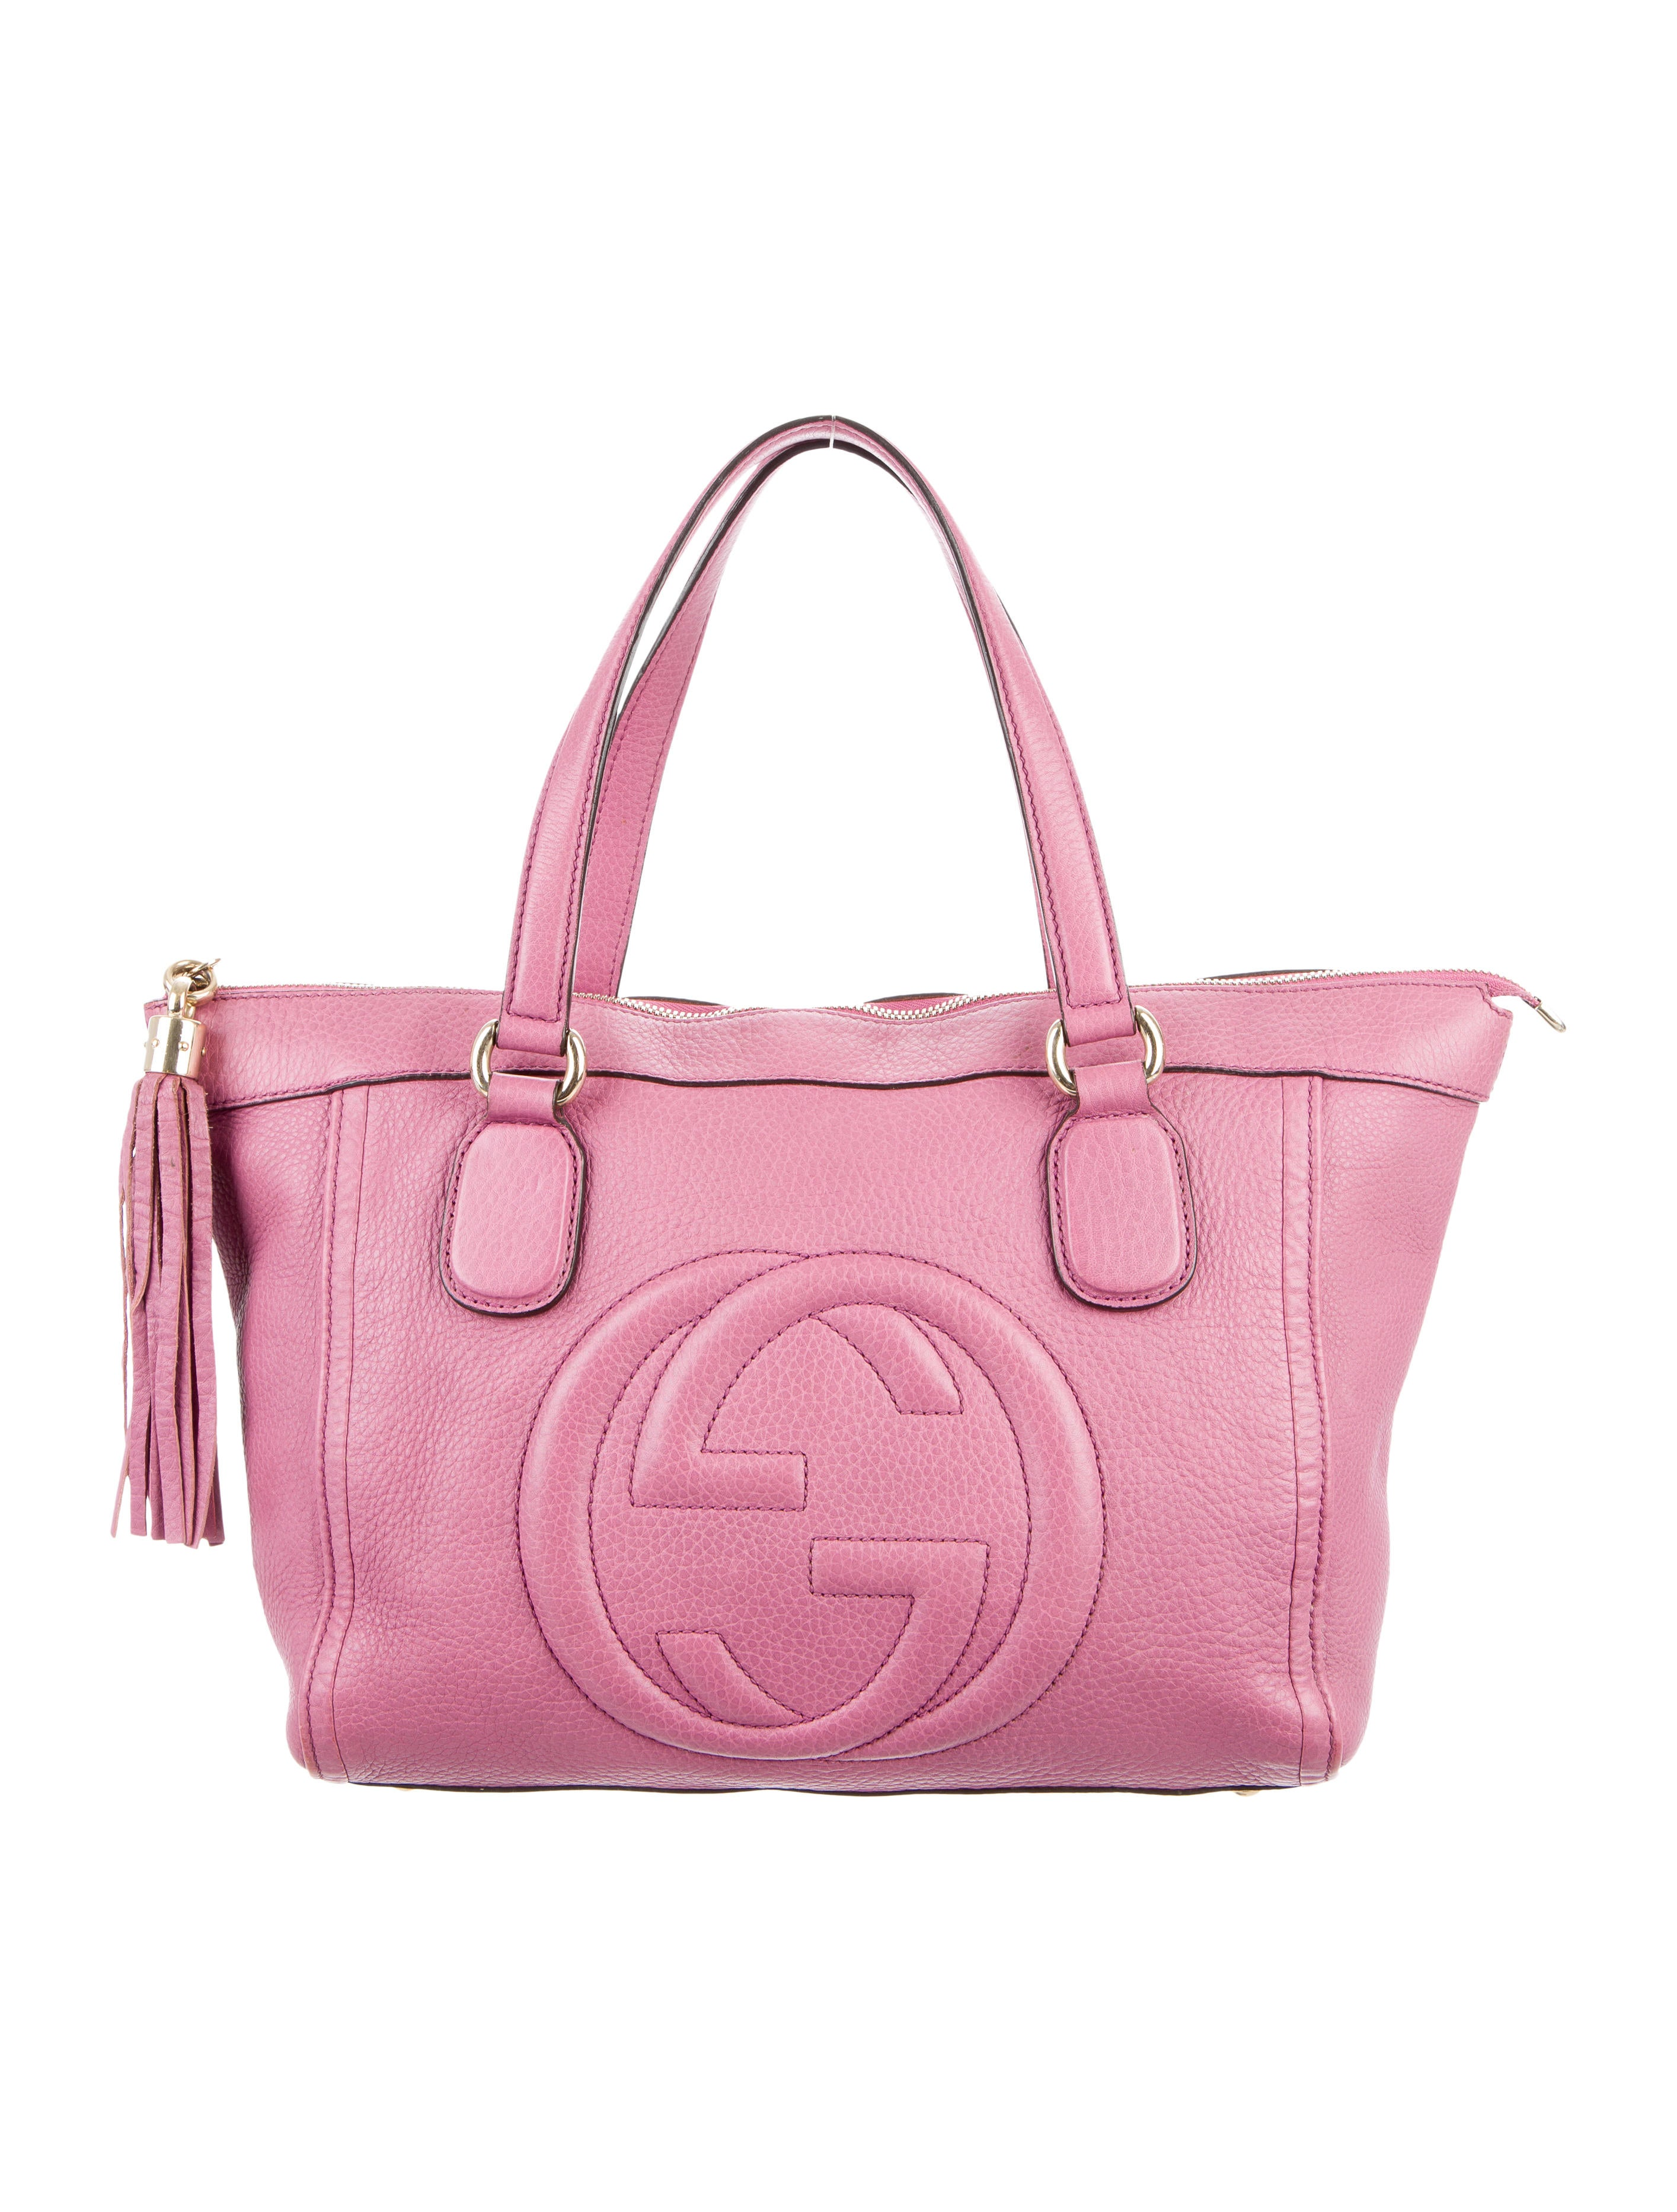 6e6512baaf39 Gucci Handbag Soho Cellarius | Stanford Center for Opportunity ...